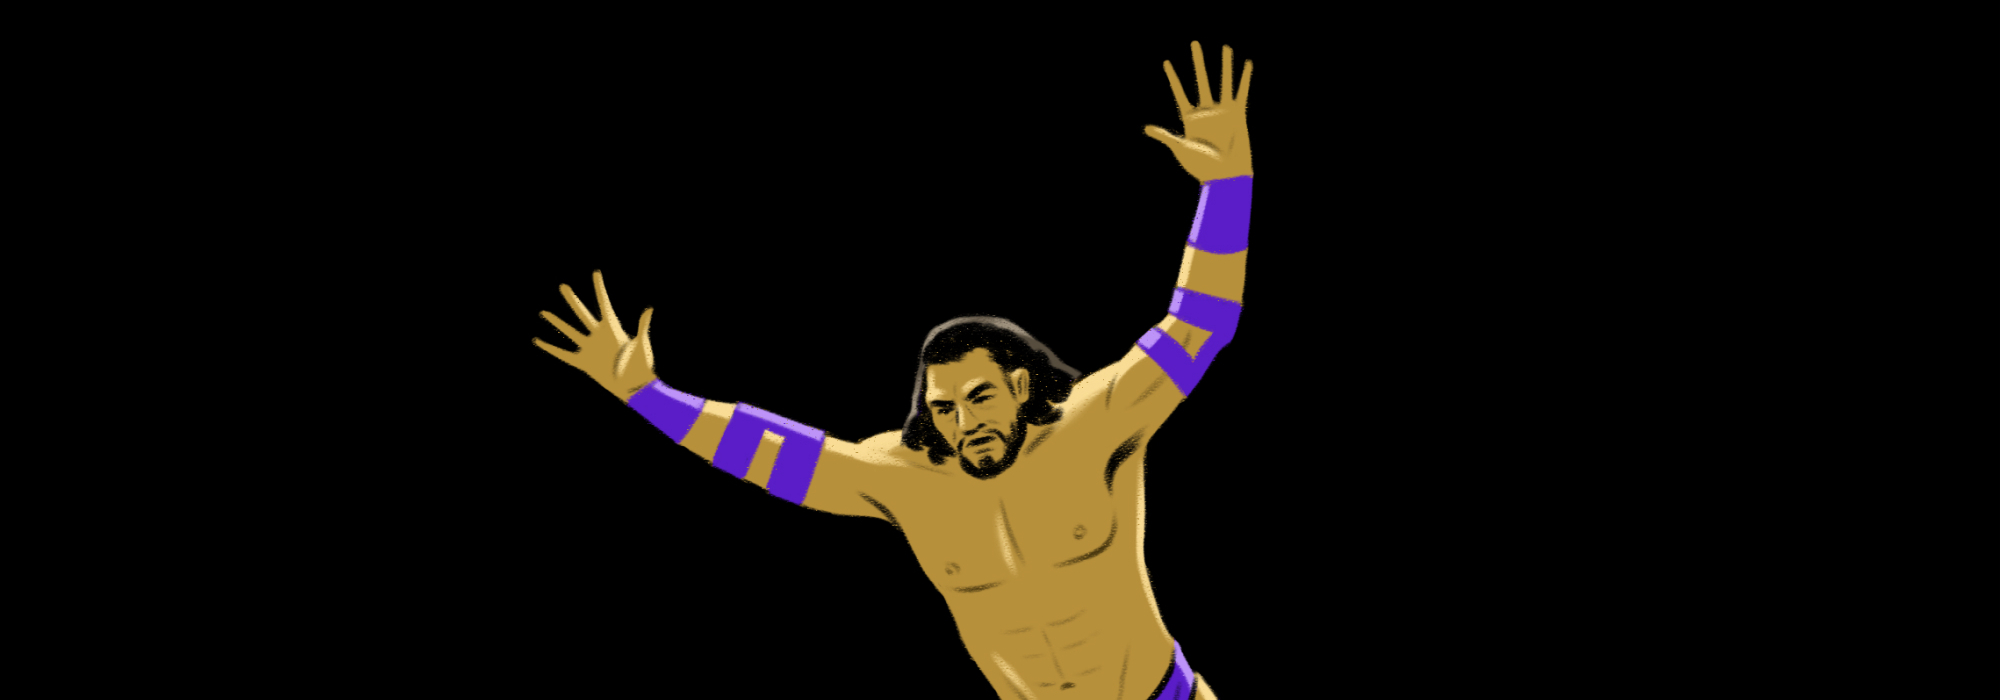 A Impact Wrestling live event